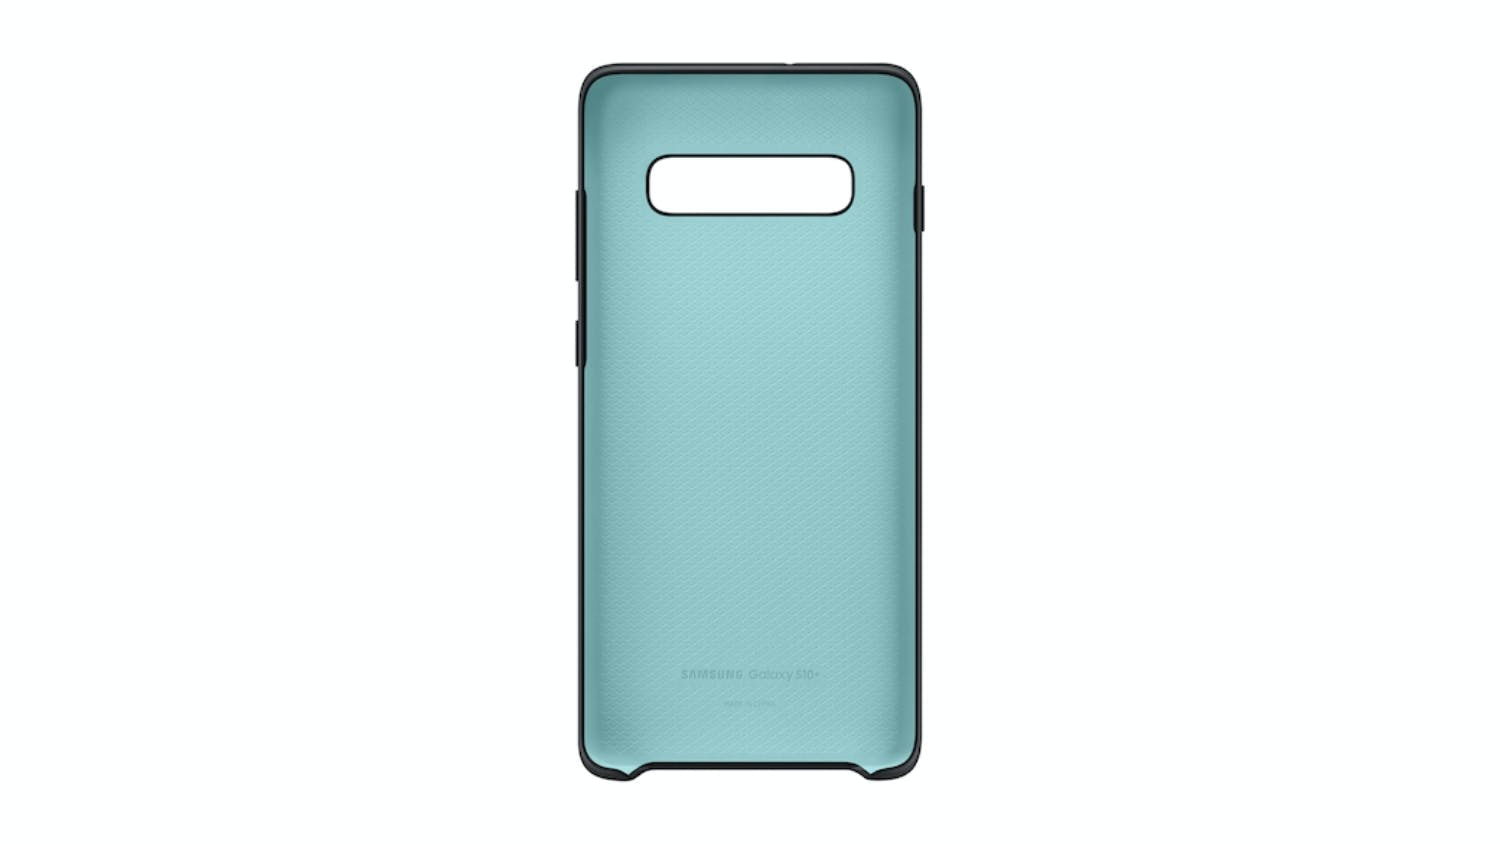 Samsung Galaxy S10 Silicone Cover - Black